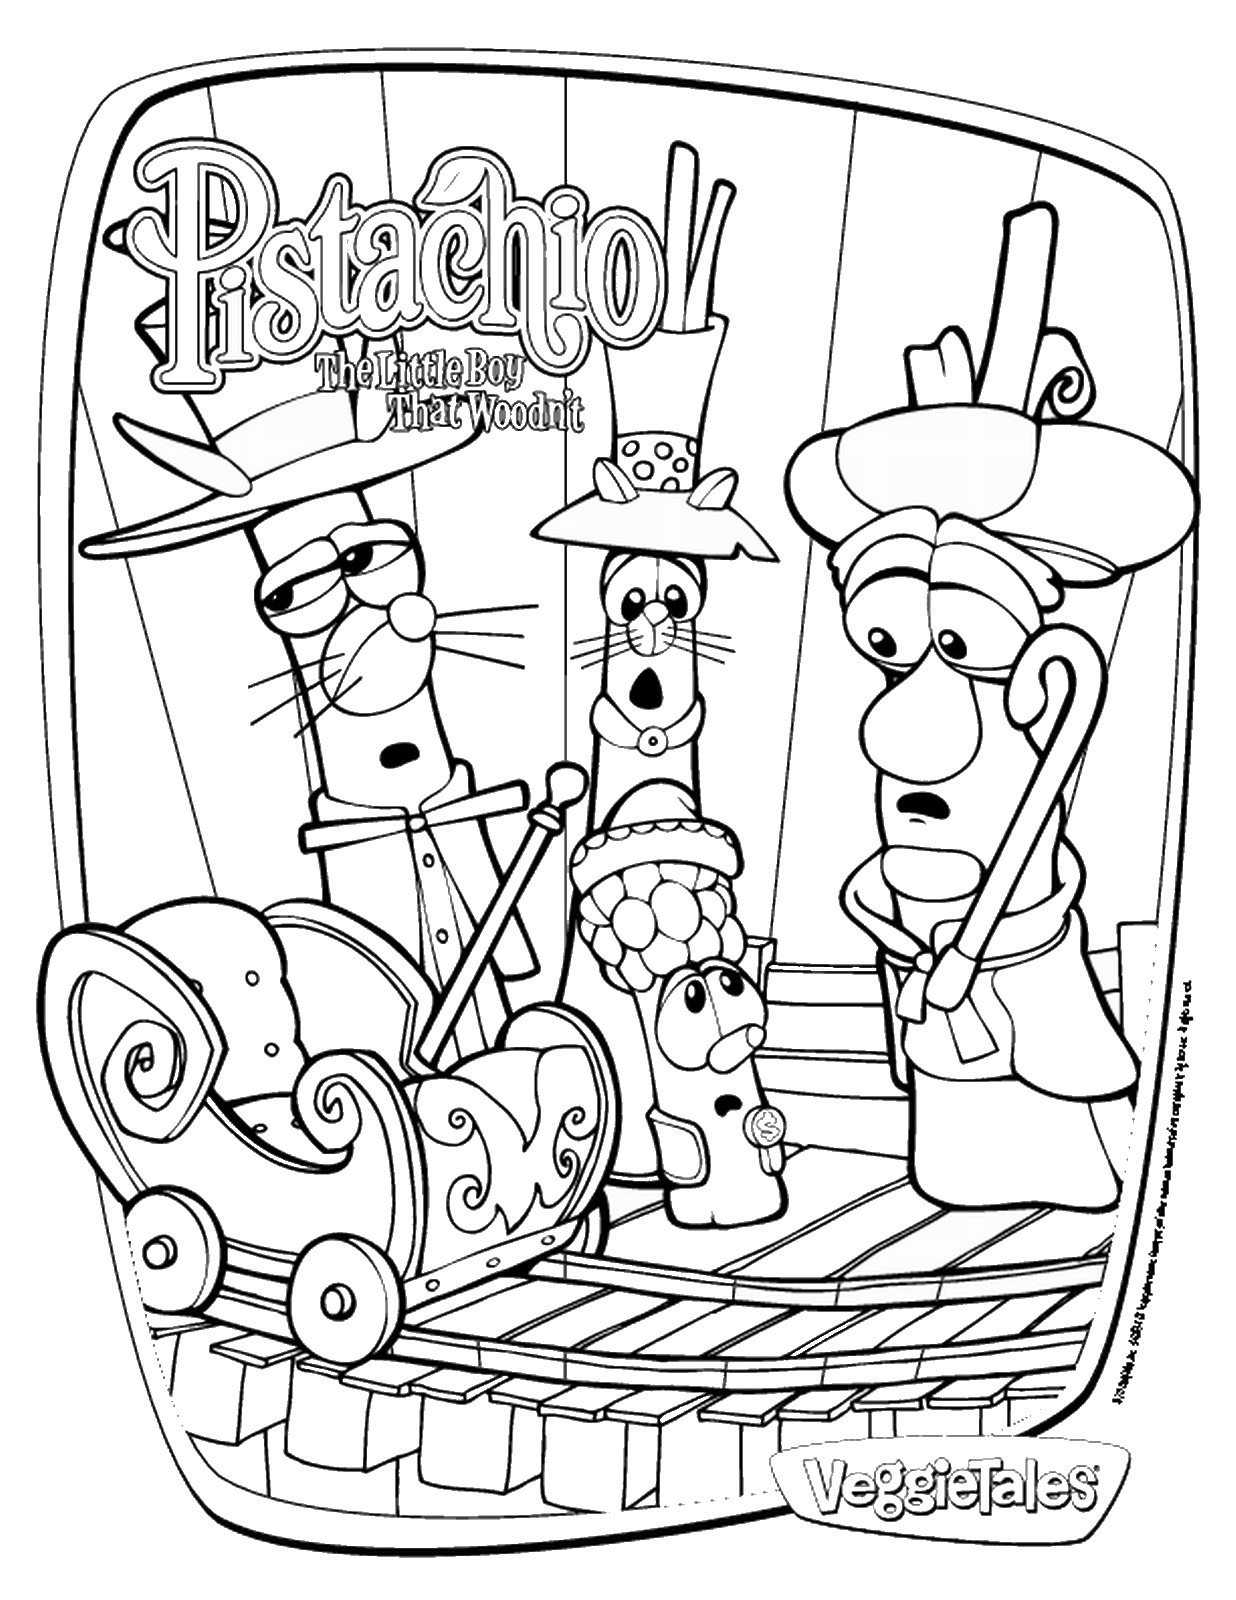 veggietales coloring pages veggie tales coloring pages veggietales coloring pages 1 2